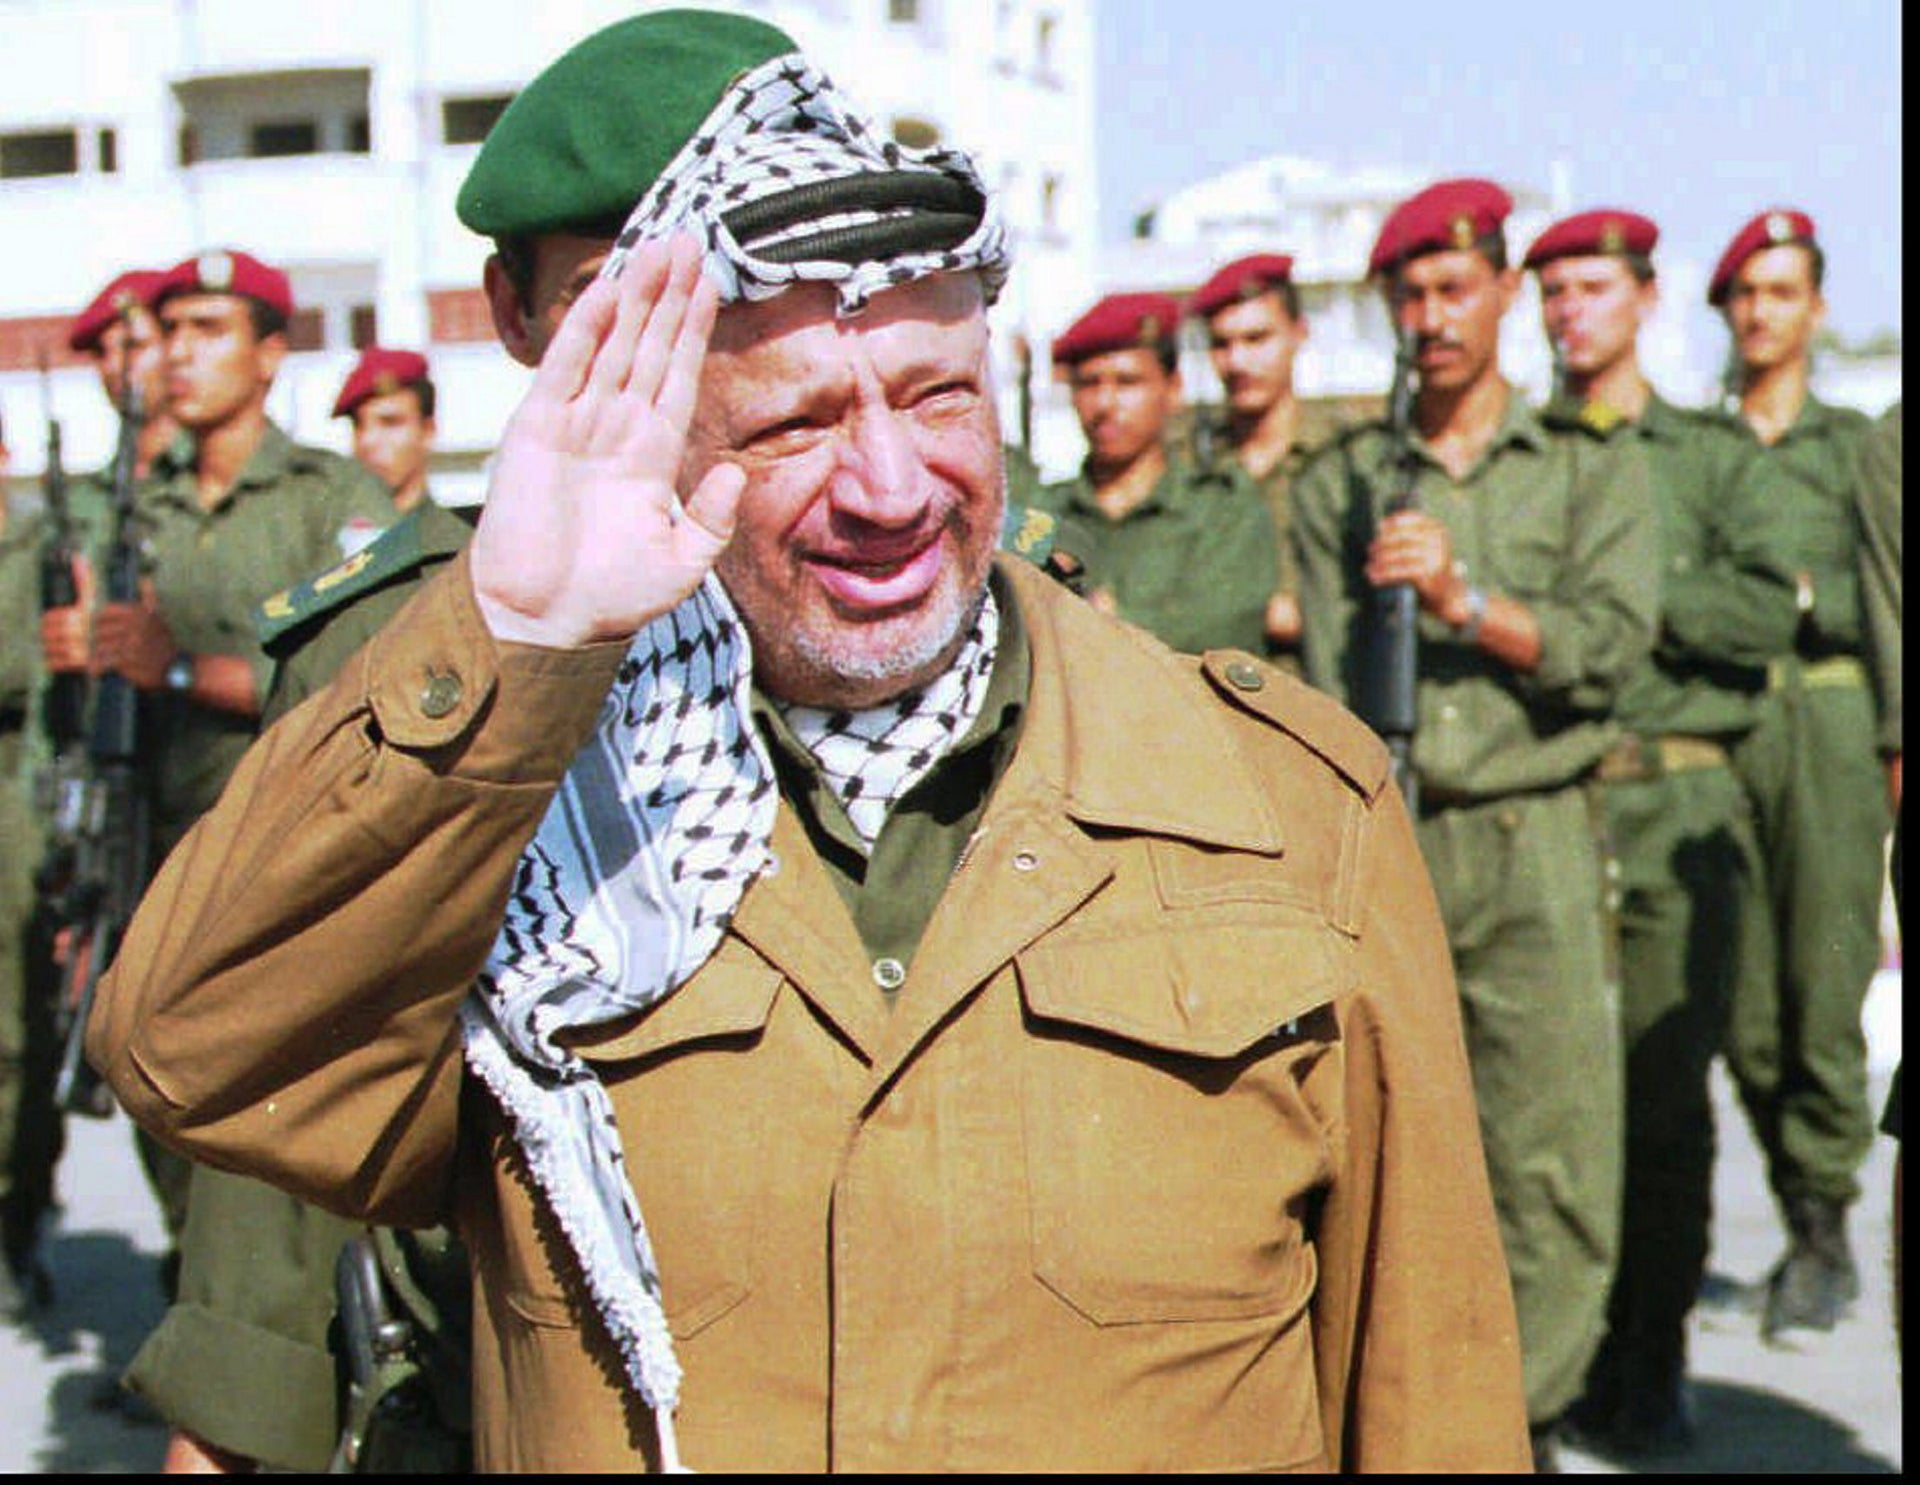 PLO leader Yasser Arafat waving to well-wishers as he returns from Cairo to his office in Gaza City, June 1995.